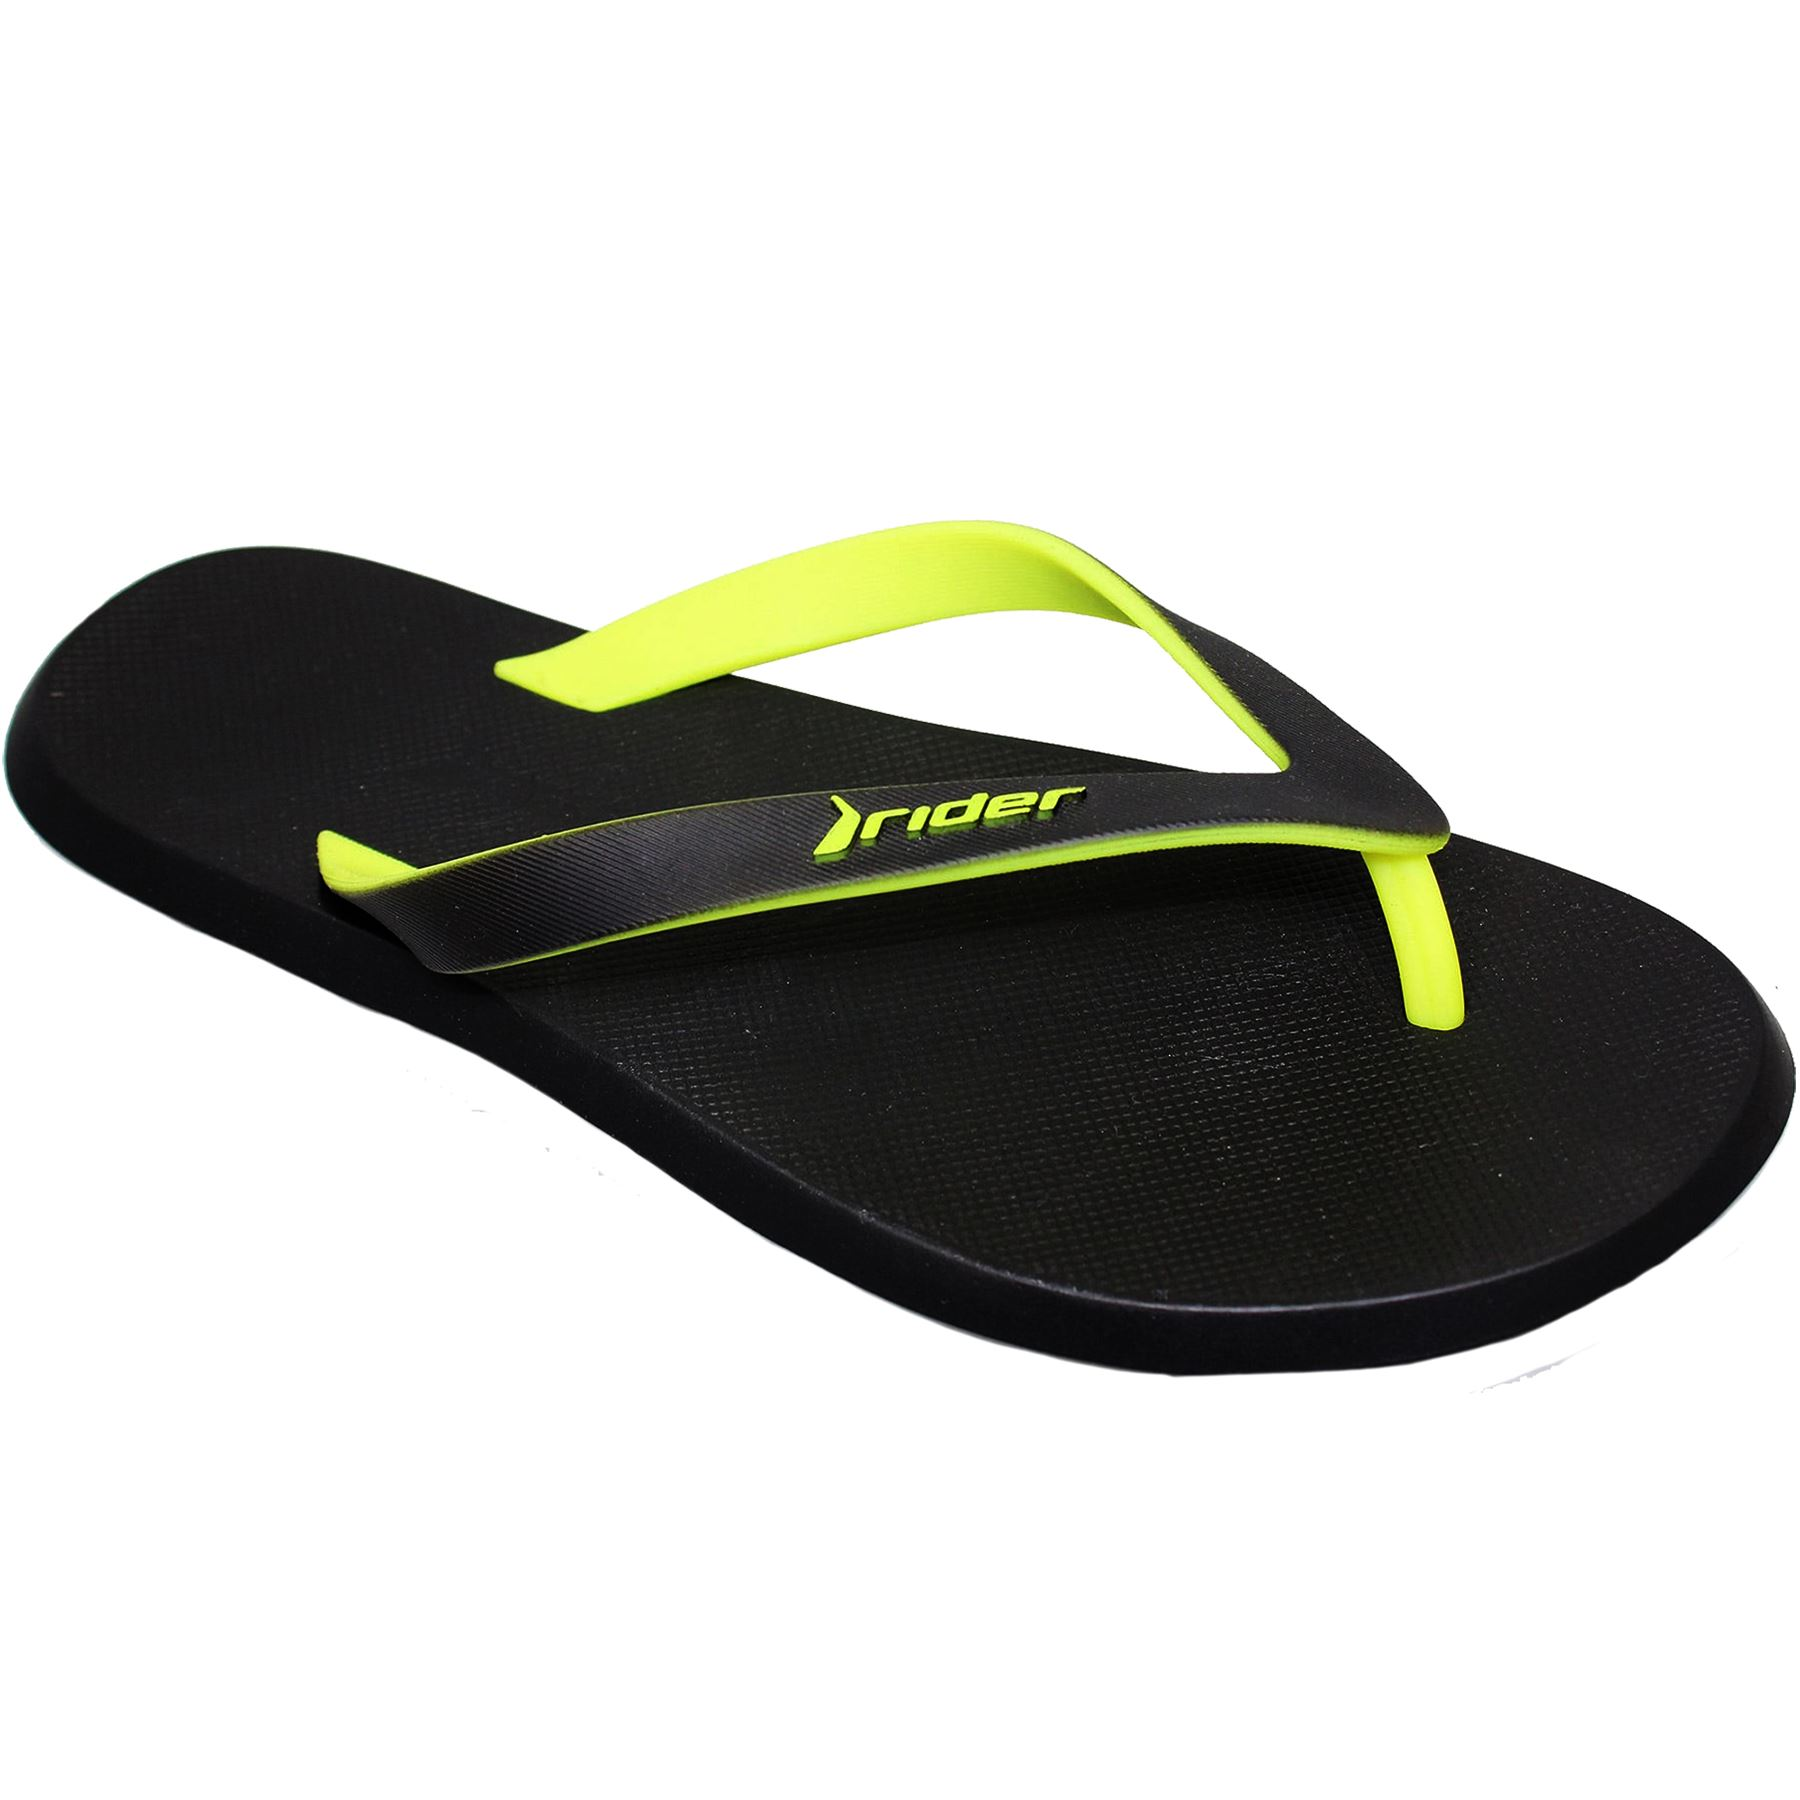 971c7eaba9b453 Mens Basic Dual Sized Comfortable Beach Shoes Thong Sandals Flip ...